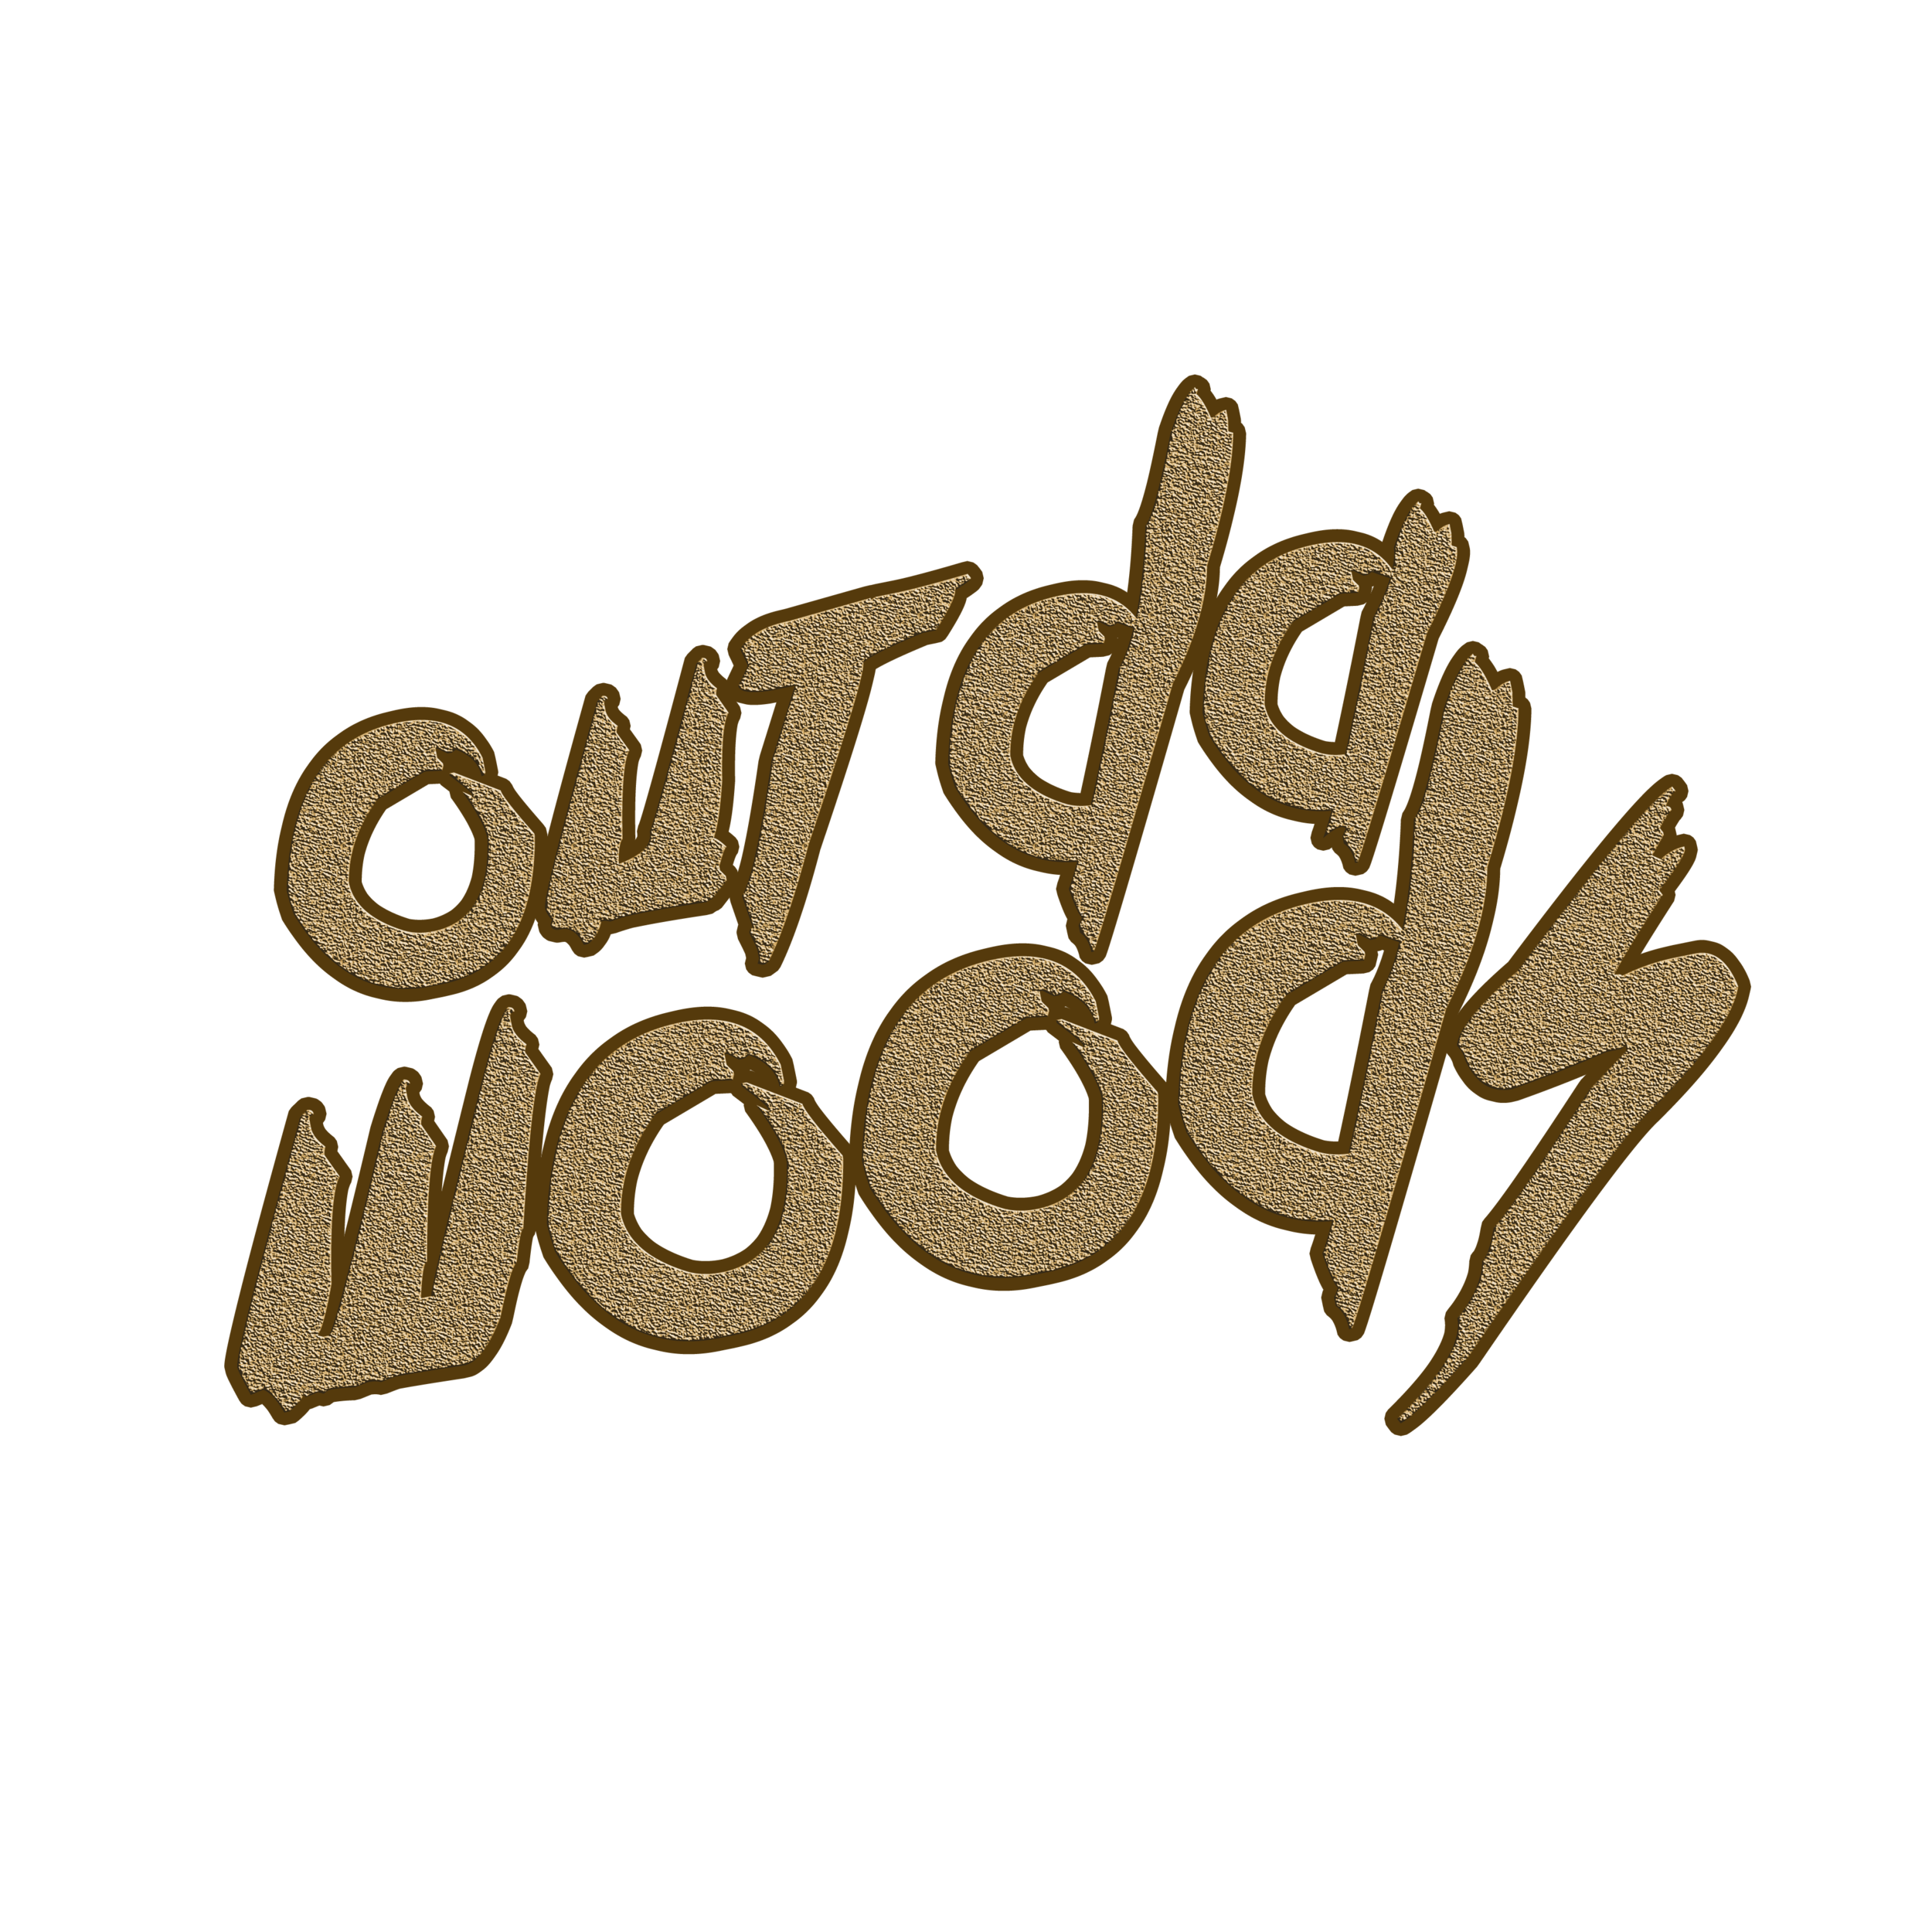 Out da woods - Logo for business entrepreneur Leslie Smith. He started an online thrift & consignment boutique called Out Da Woods. This is a freestyle design that was collaborated on with the client.